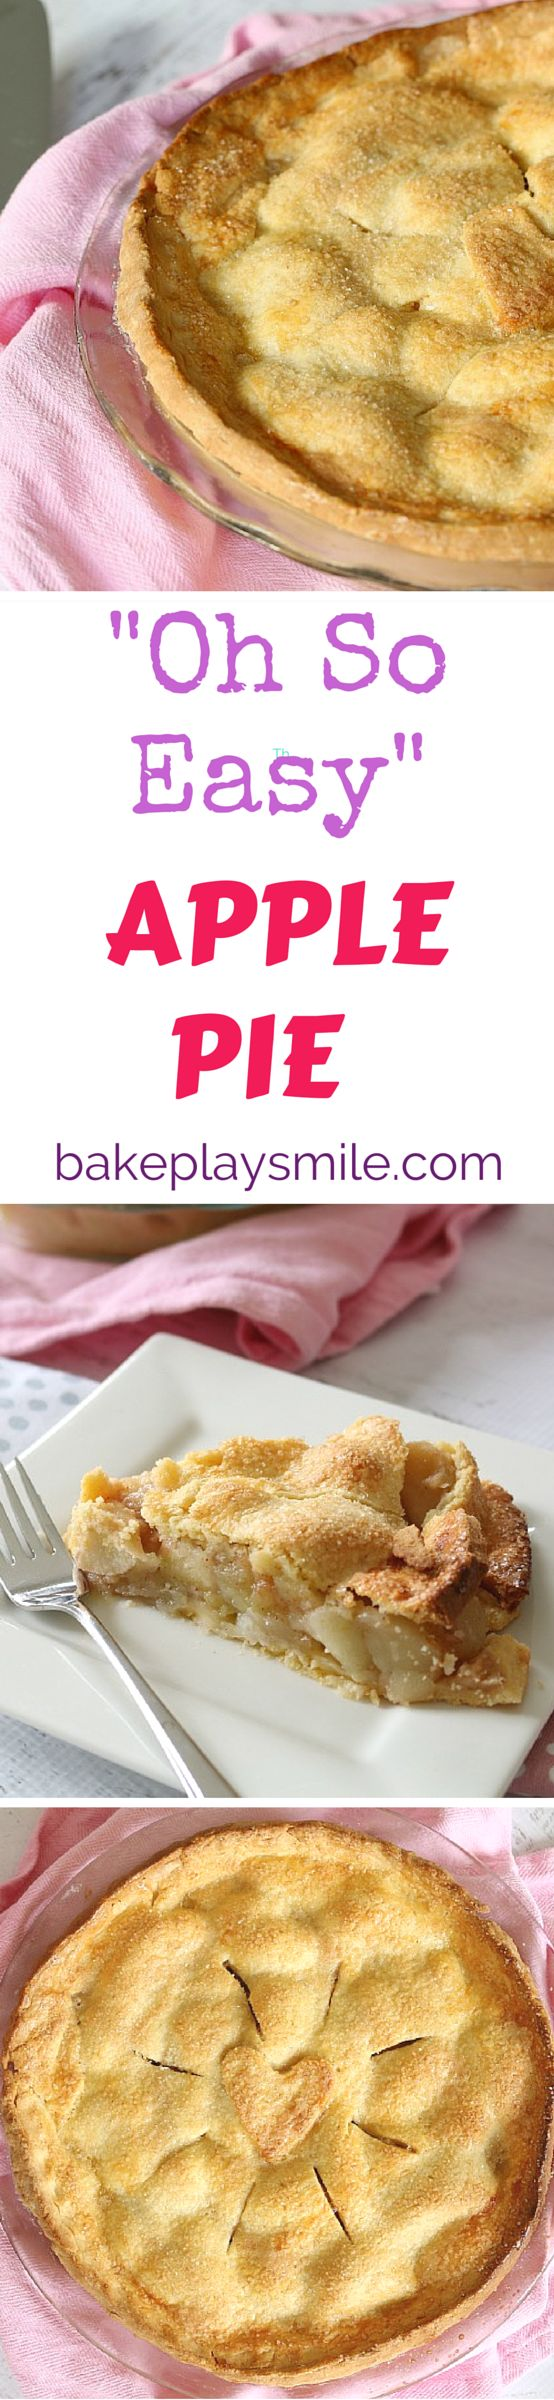 I can't even tell you how many times I've been asked for this apple pie recipe. It has the best flaky pastry, the easiest filling and is just the yummiest thing ever! #apple #pie #recipe